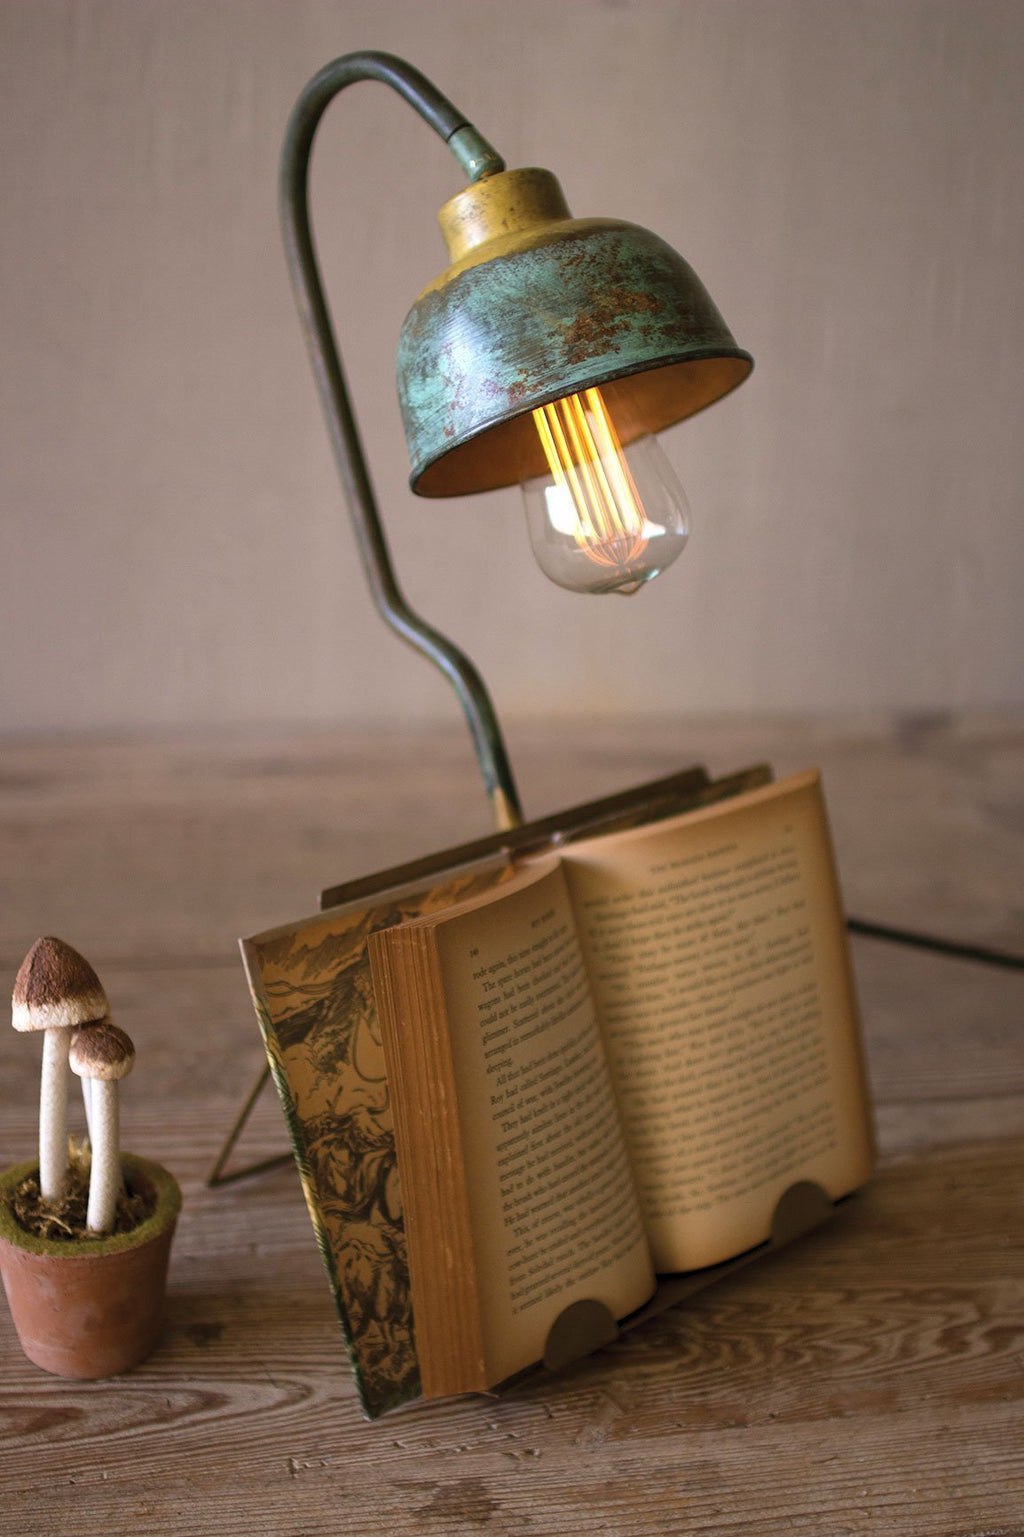 Urban Farmhouse Designs Table Lamp with Book Holder